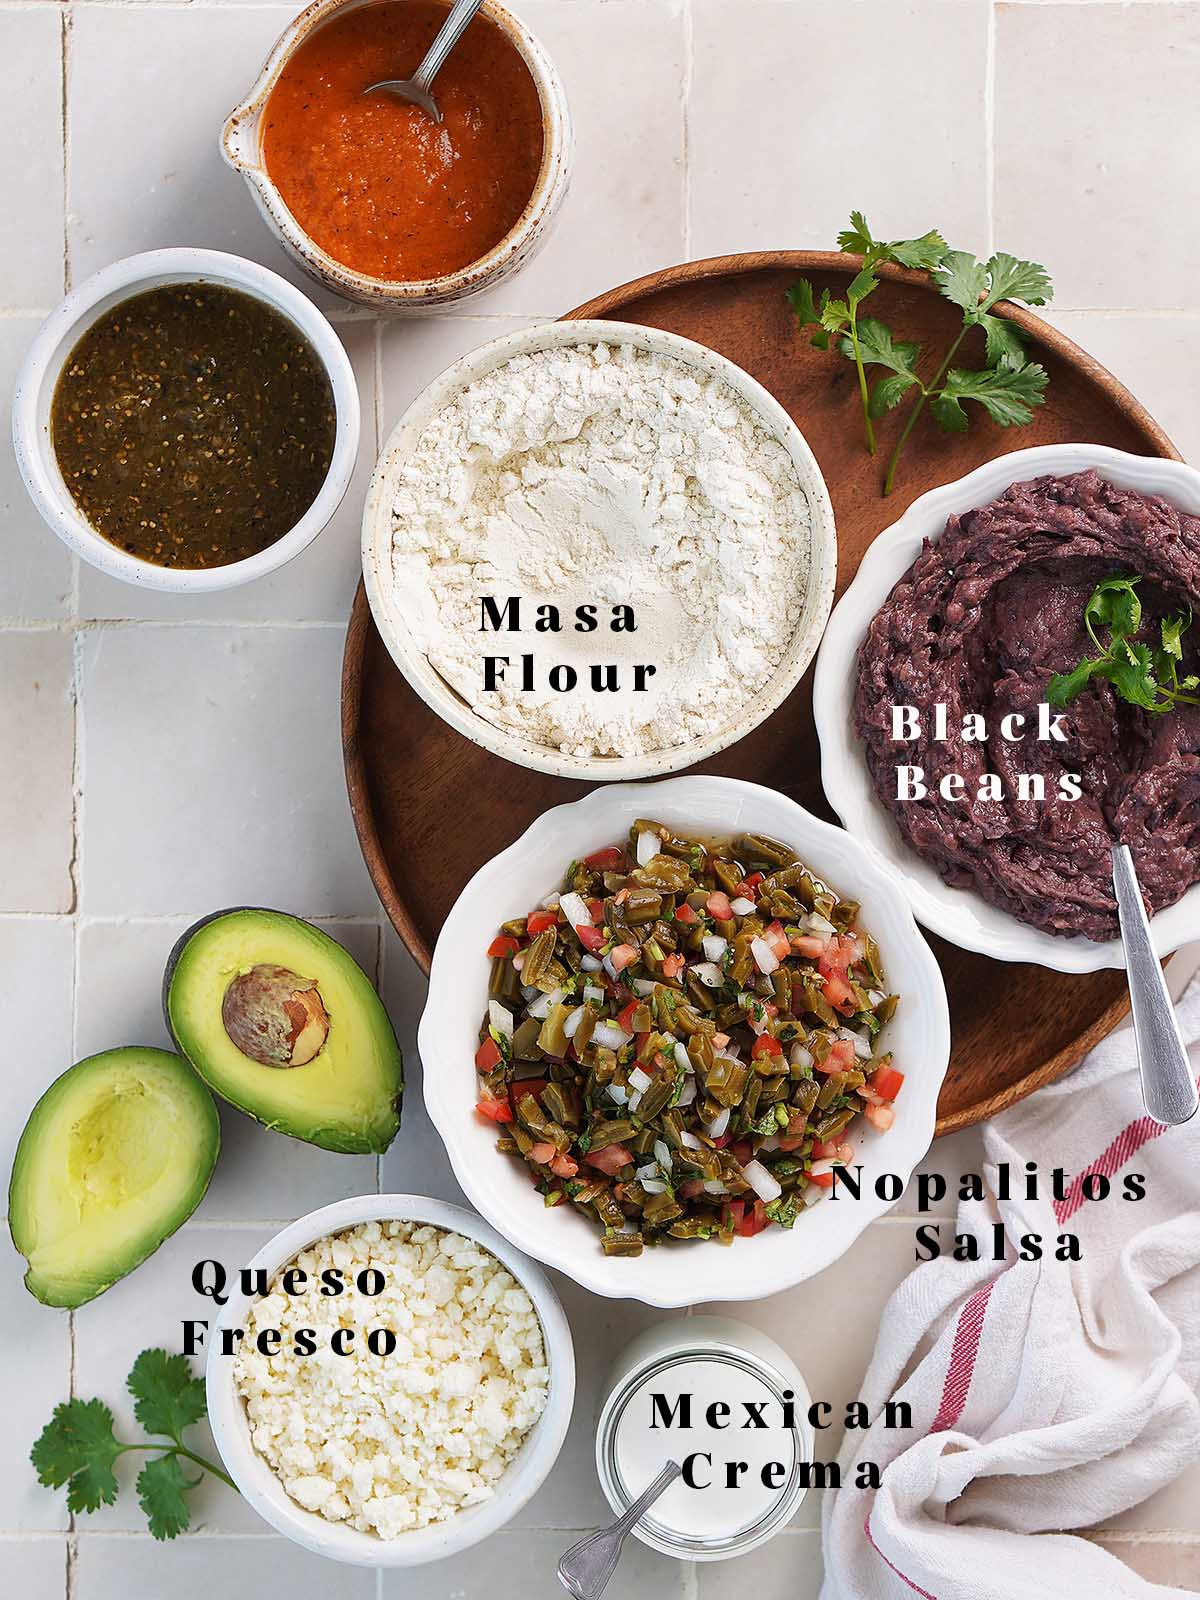 All of the ingredients in small white bowls.